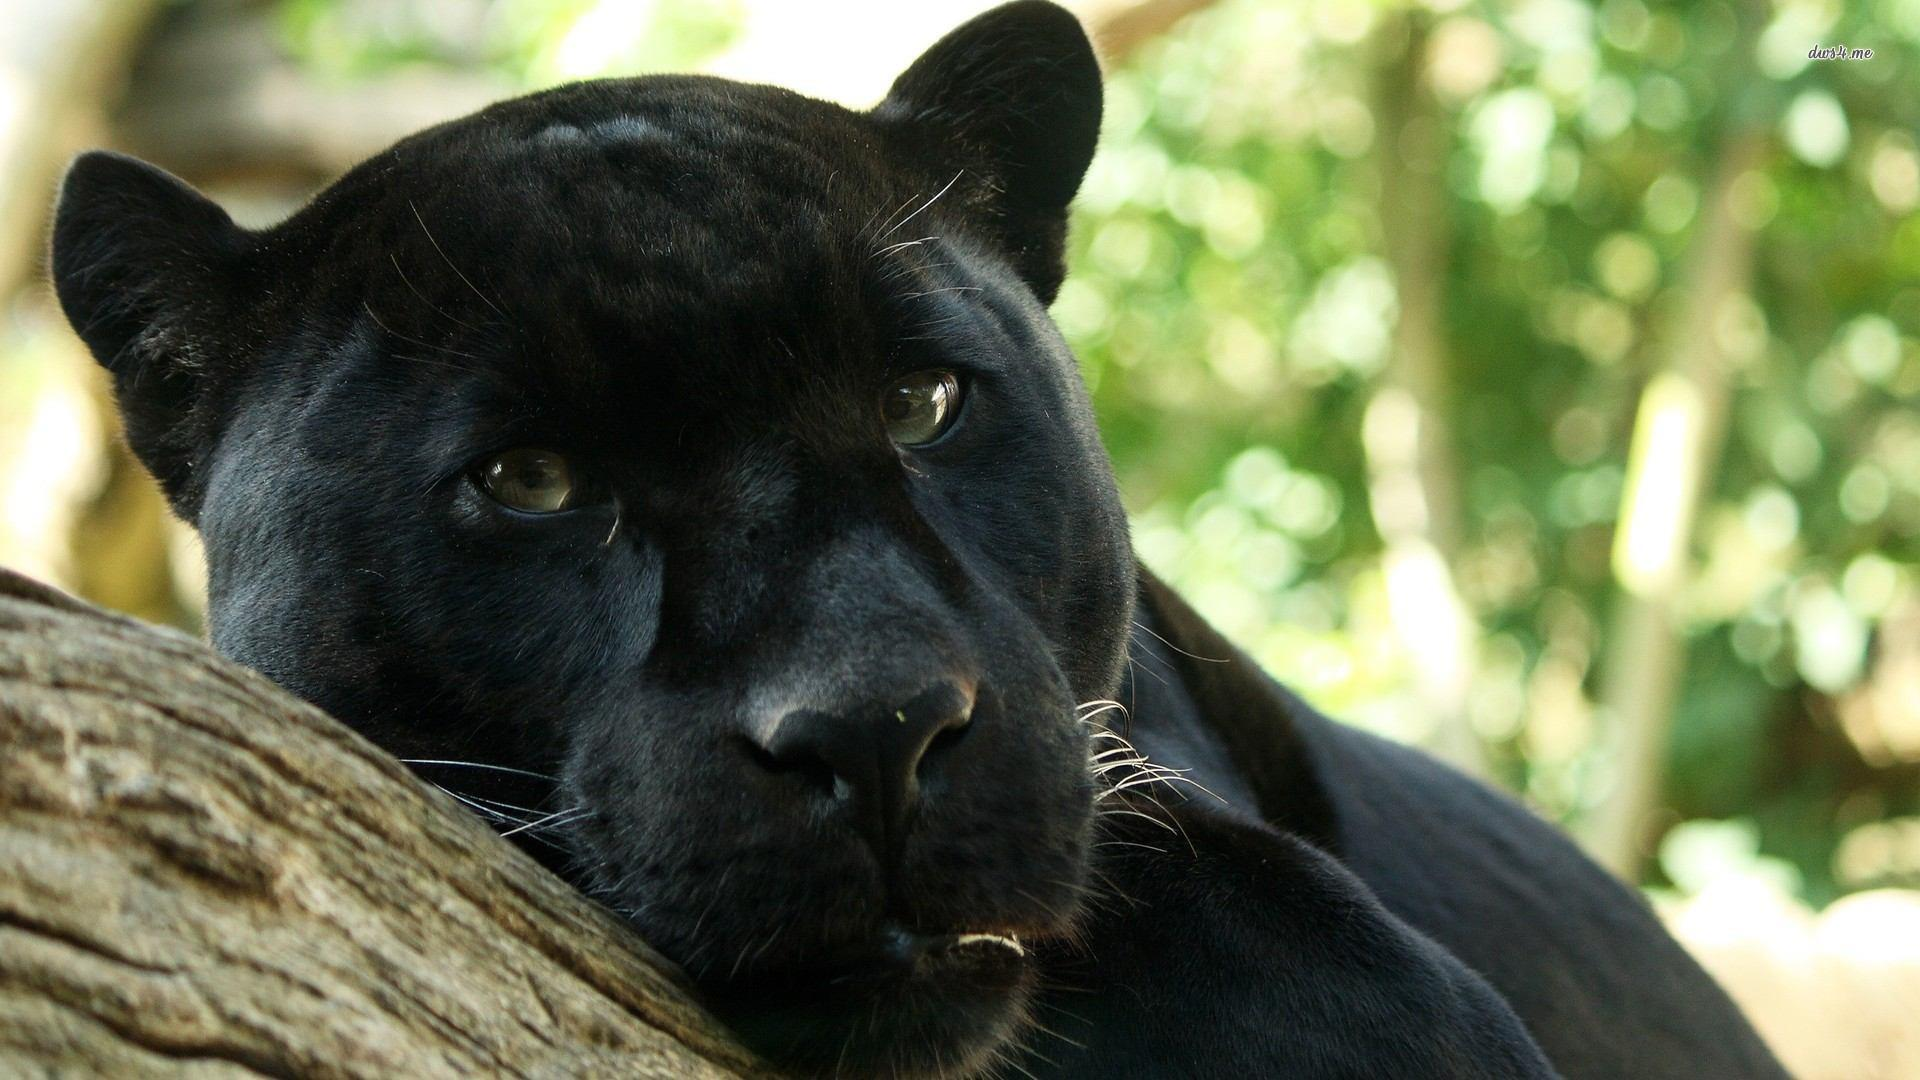 Twitter / Ginsterbabe: I'm watching you...Panther ...